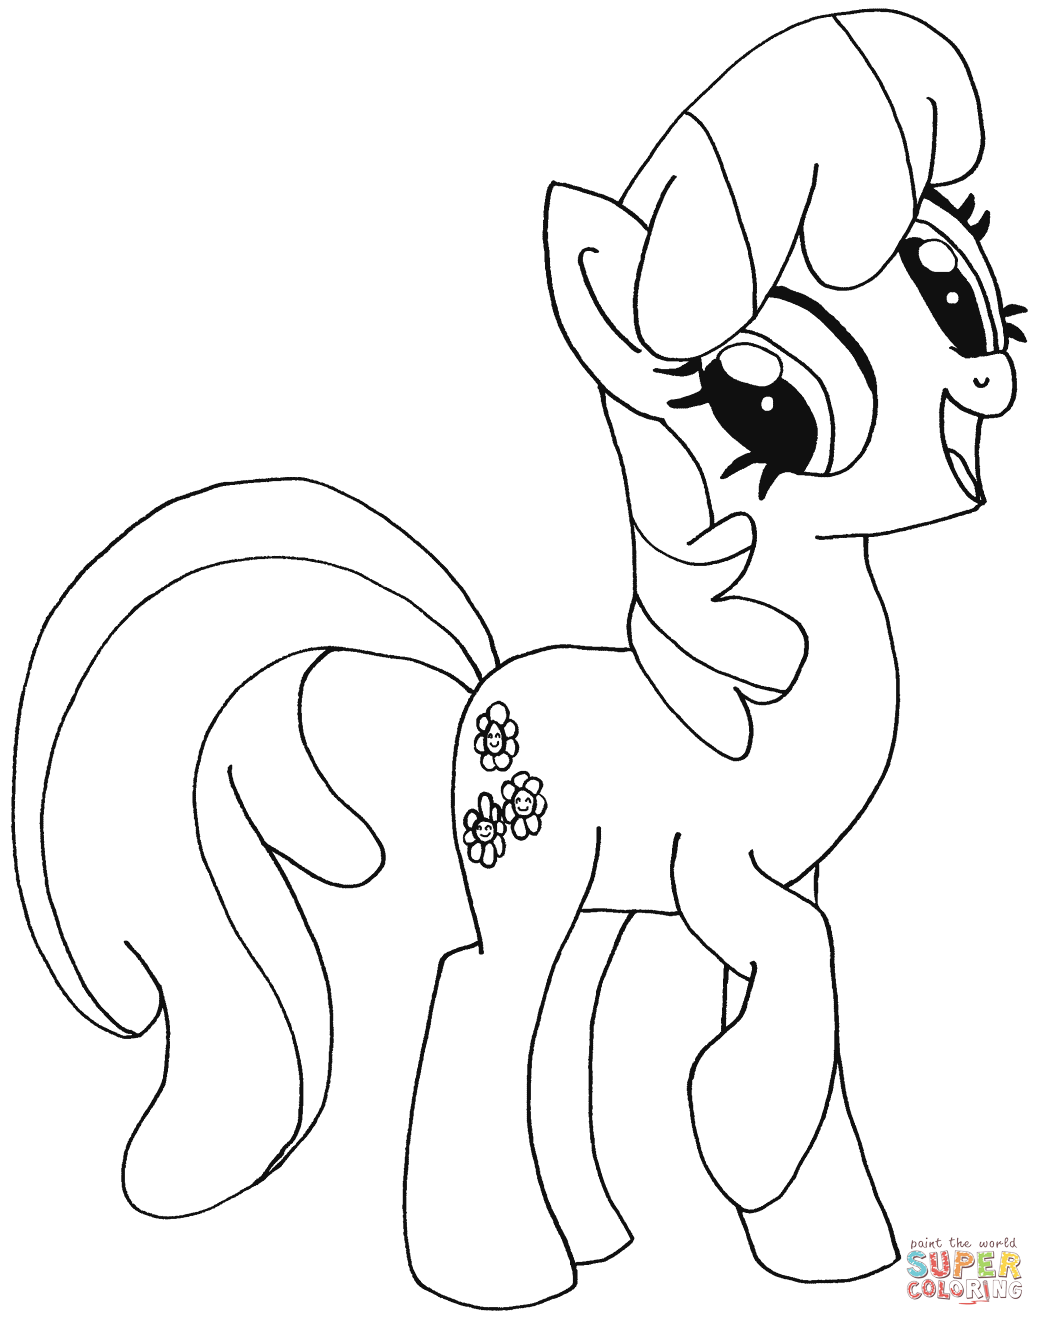 Ausmalbilder My Little Pony Discord : My Little Pony Coloring Pages Pony Coloring Pages Mlp Coloring Pages